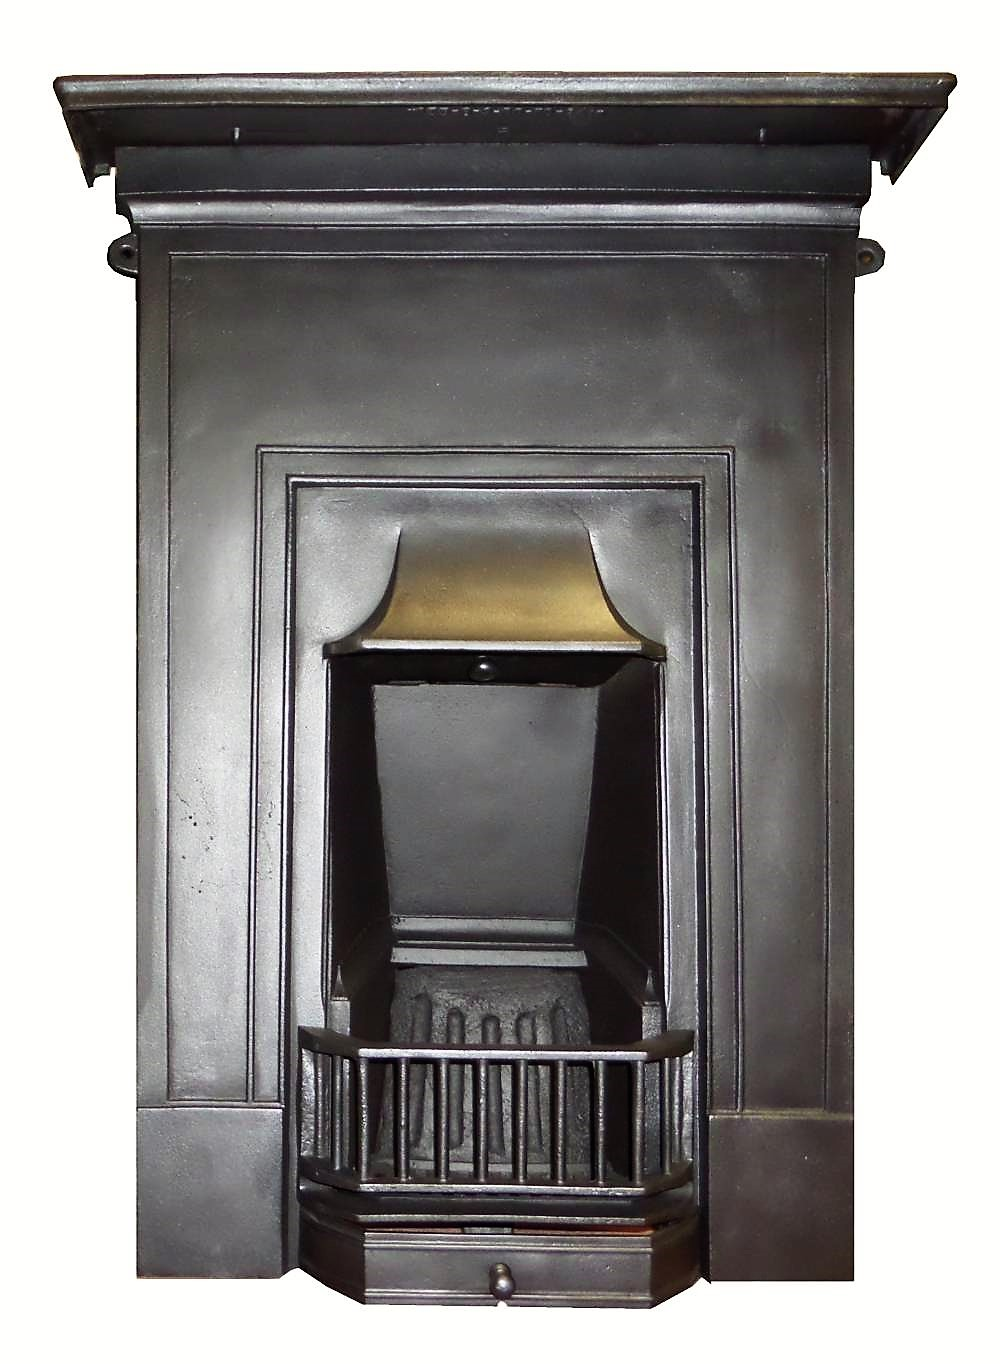 Marble makeover british ceramic tile - Ai 014b Antique 1920s Cast Iron Bedroom Combination Fireplace